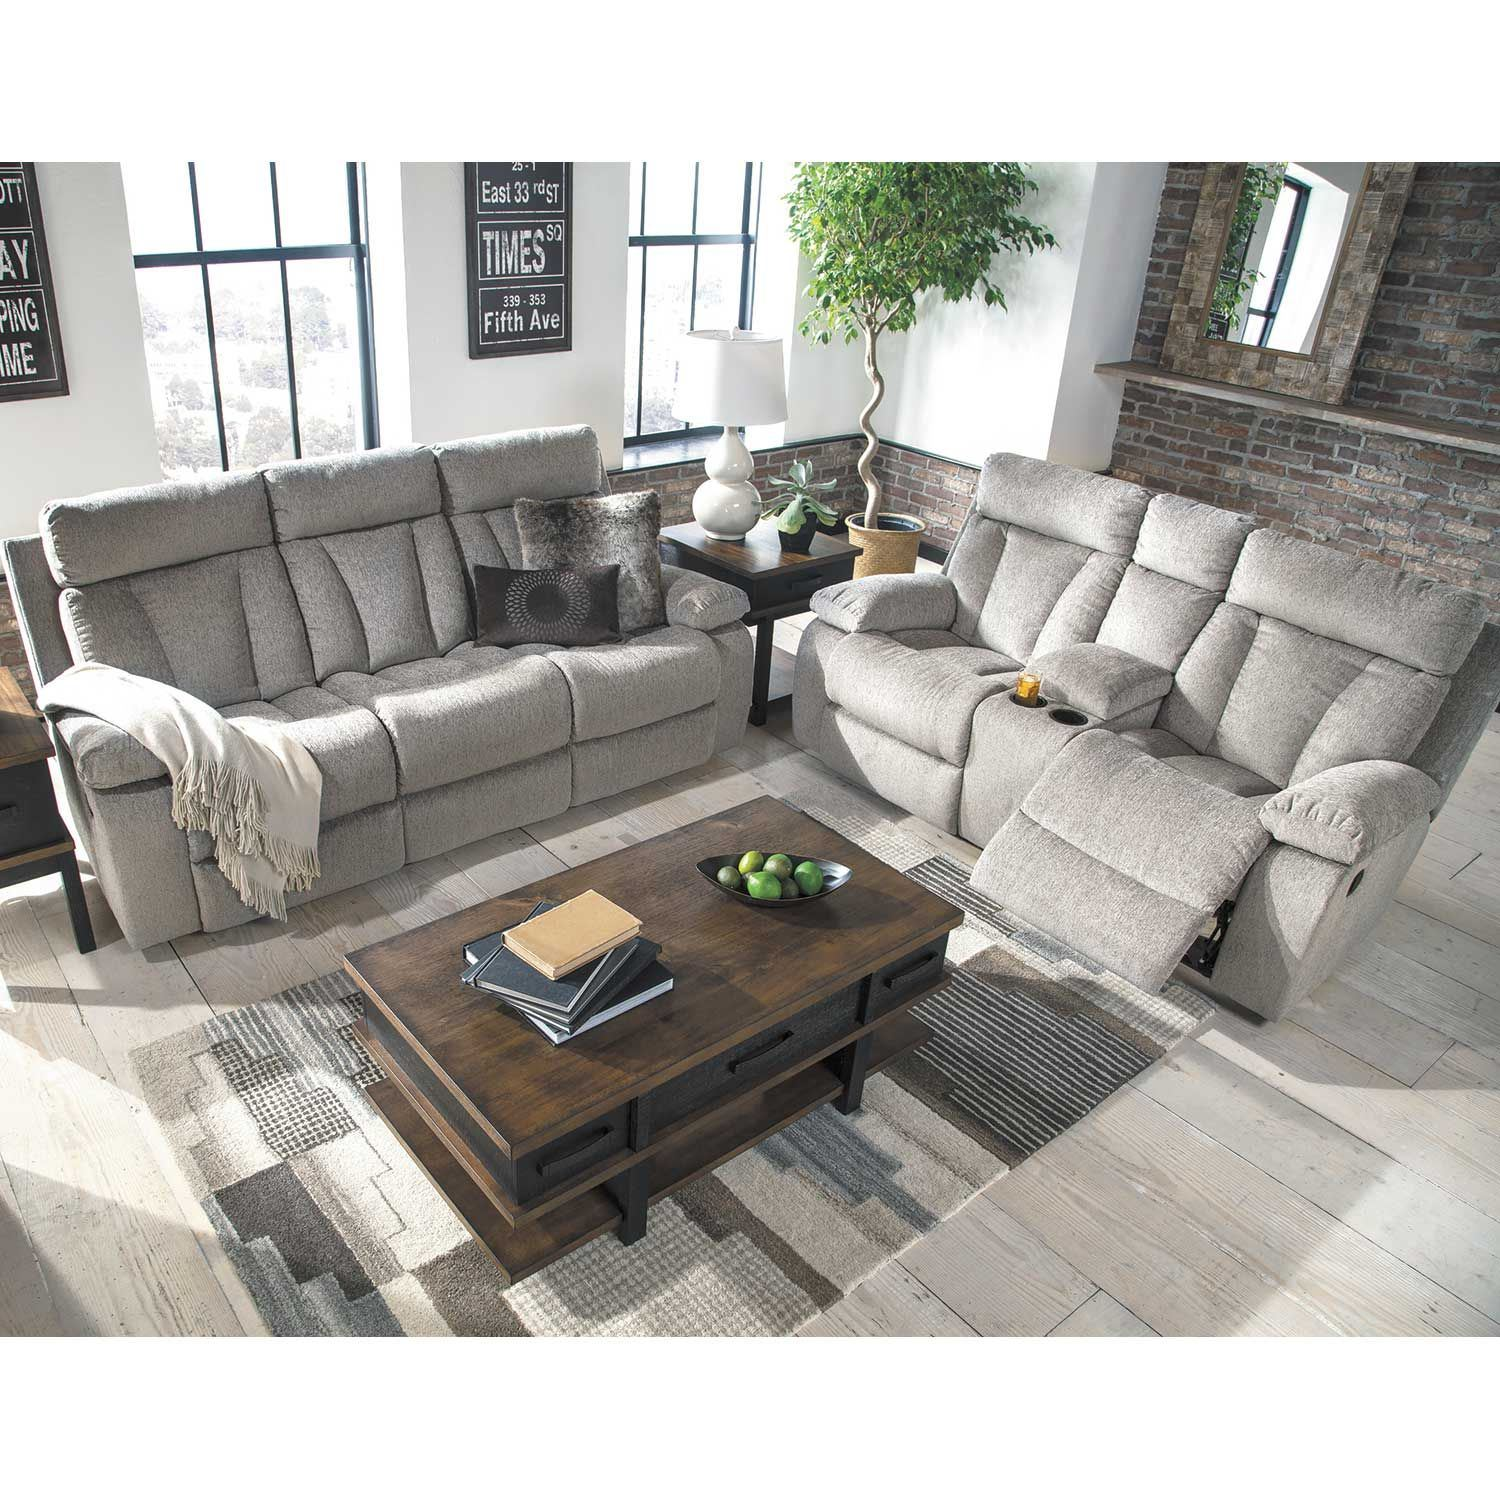 mitchiner grey reclining sofa with drop down table 7620489 ashley furniture afw. Black Bedroom Furniture Sets. Home Design Ideas